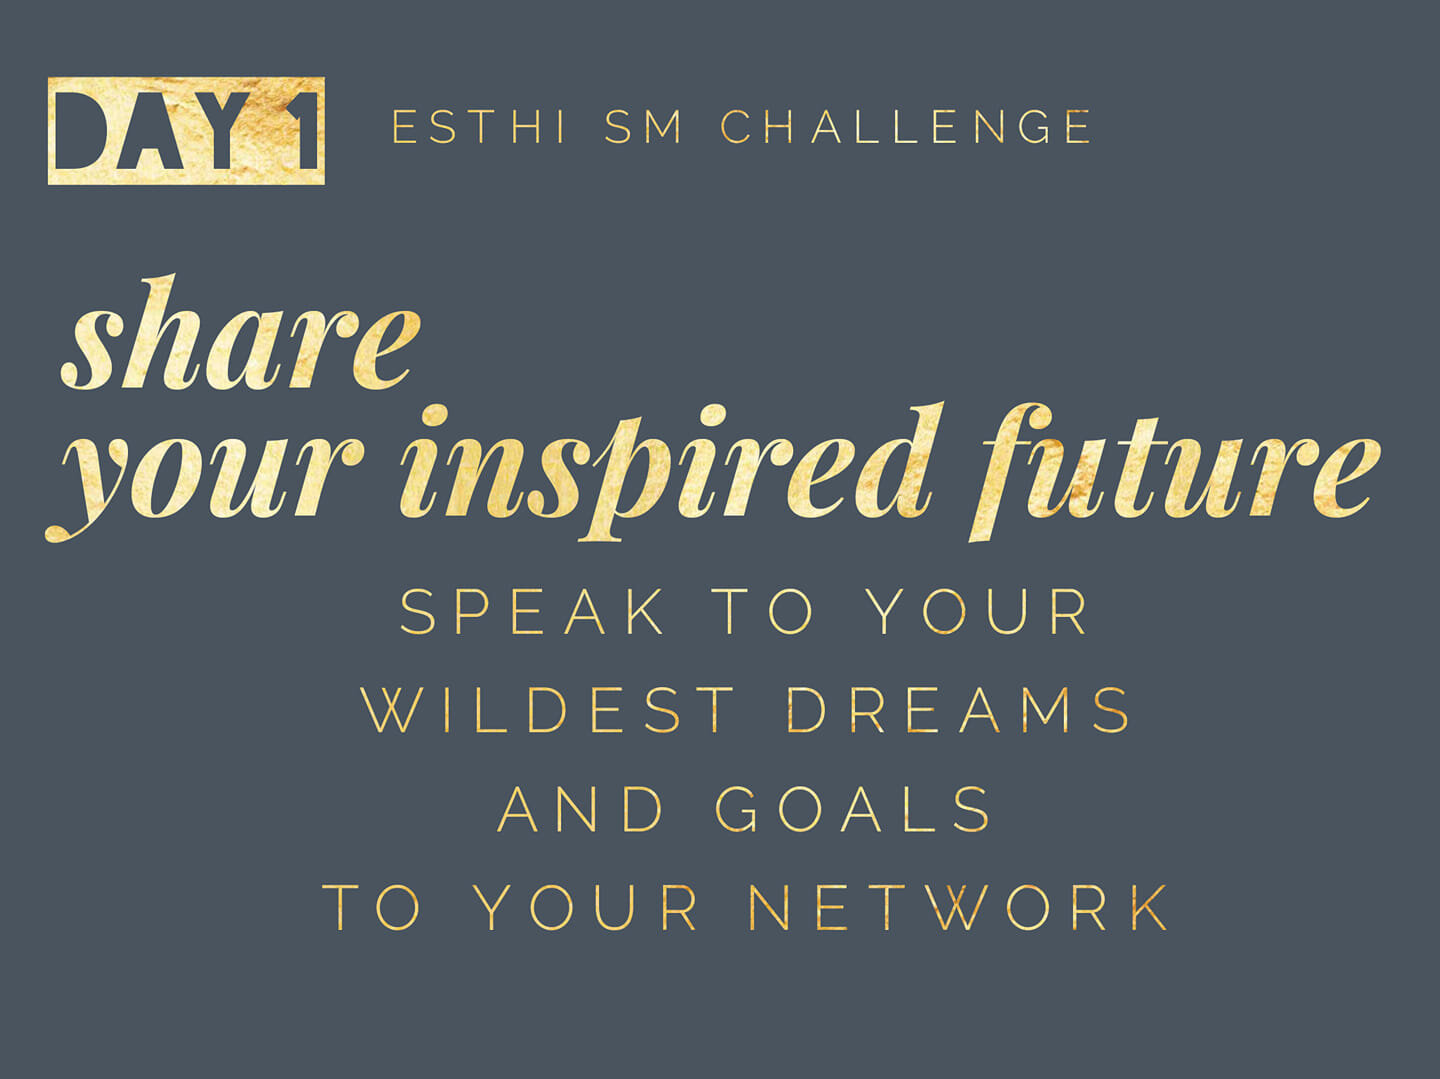 share your inspired future - Get ready to shift the energy of your social media toward high quality relationships, trust and client leads!Our first challenge may be intimidating for you - but that is a GOOD THING - it means it will change you!DAY 1 TASK: I want you to share your INSPIRED FUTURE with your network. ⭐What is an